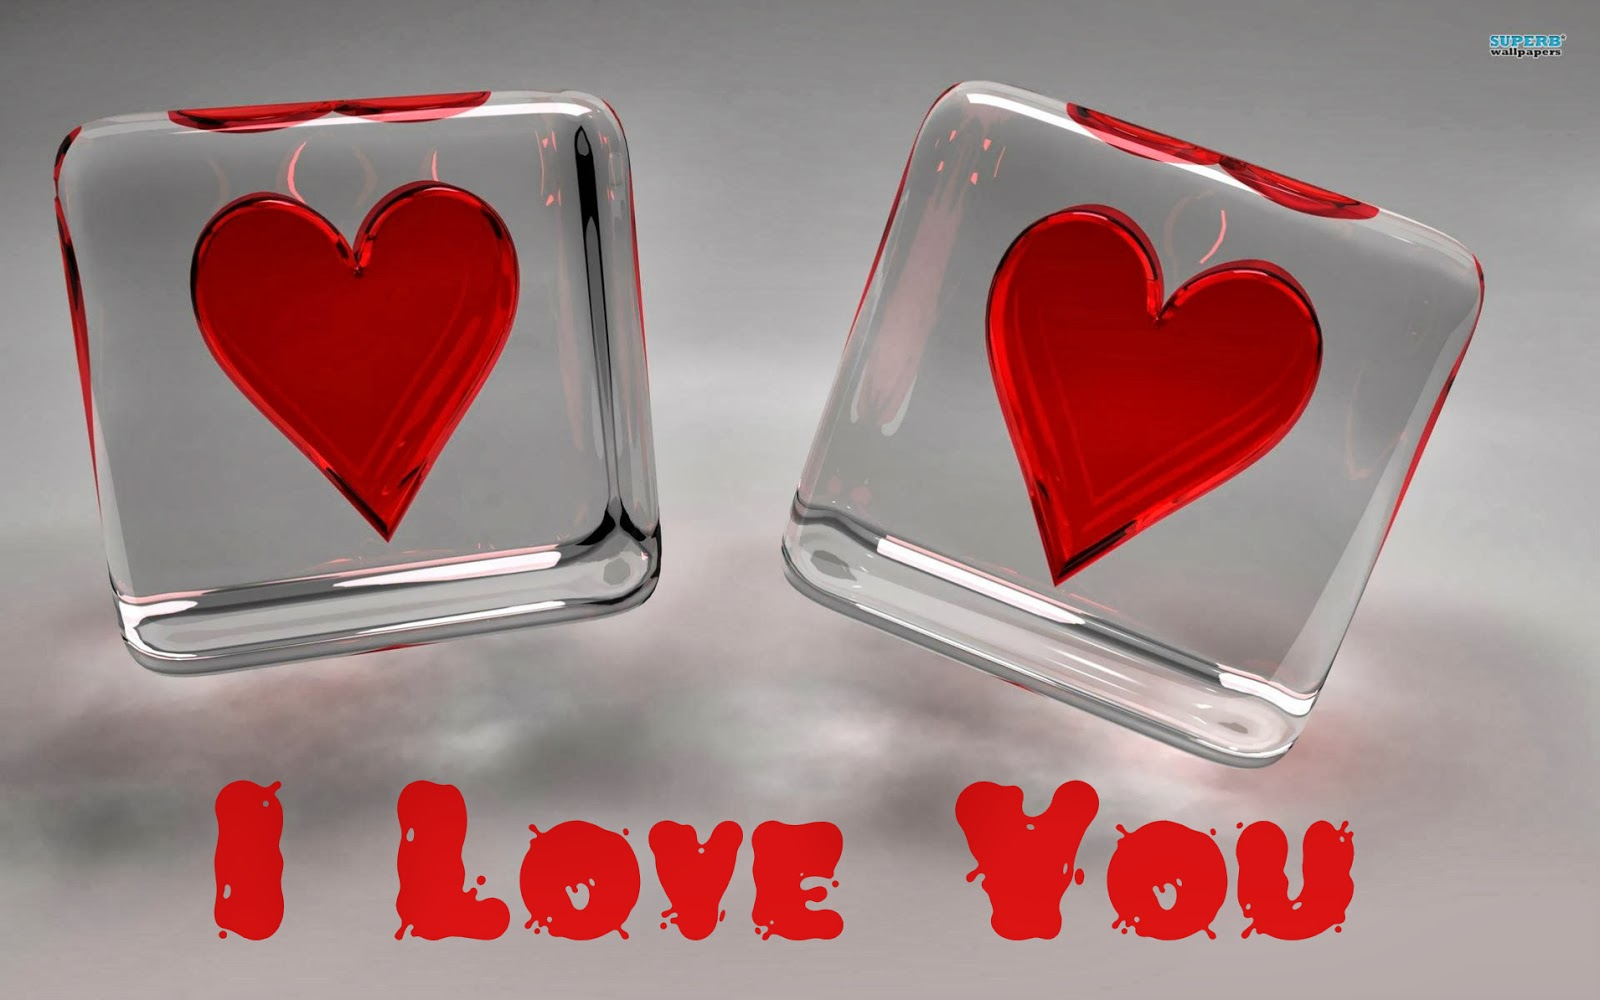 I Love You H And K Letter 868247 Hd Wallpaper Backgrounds Download